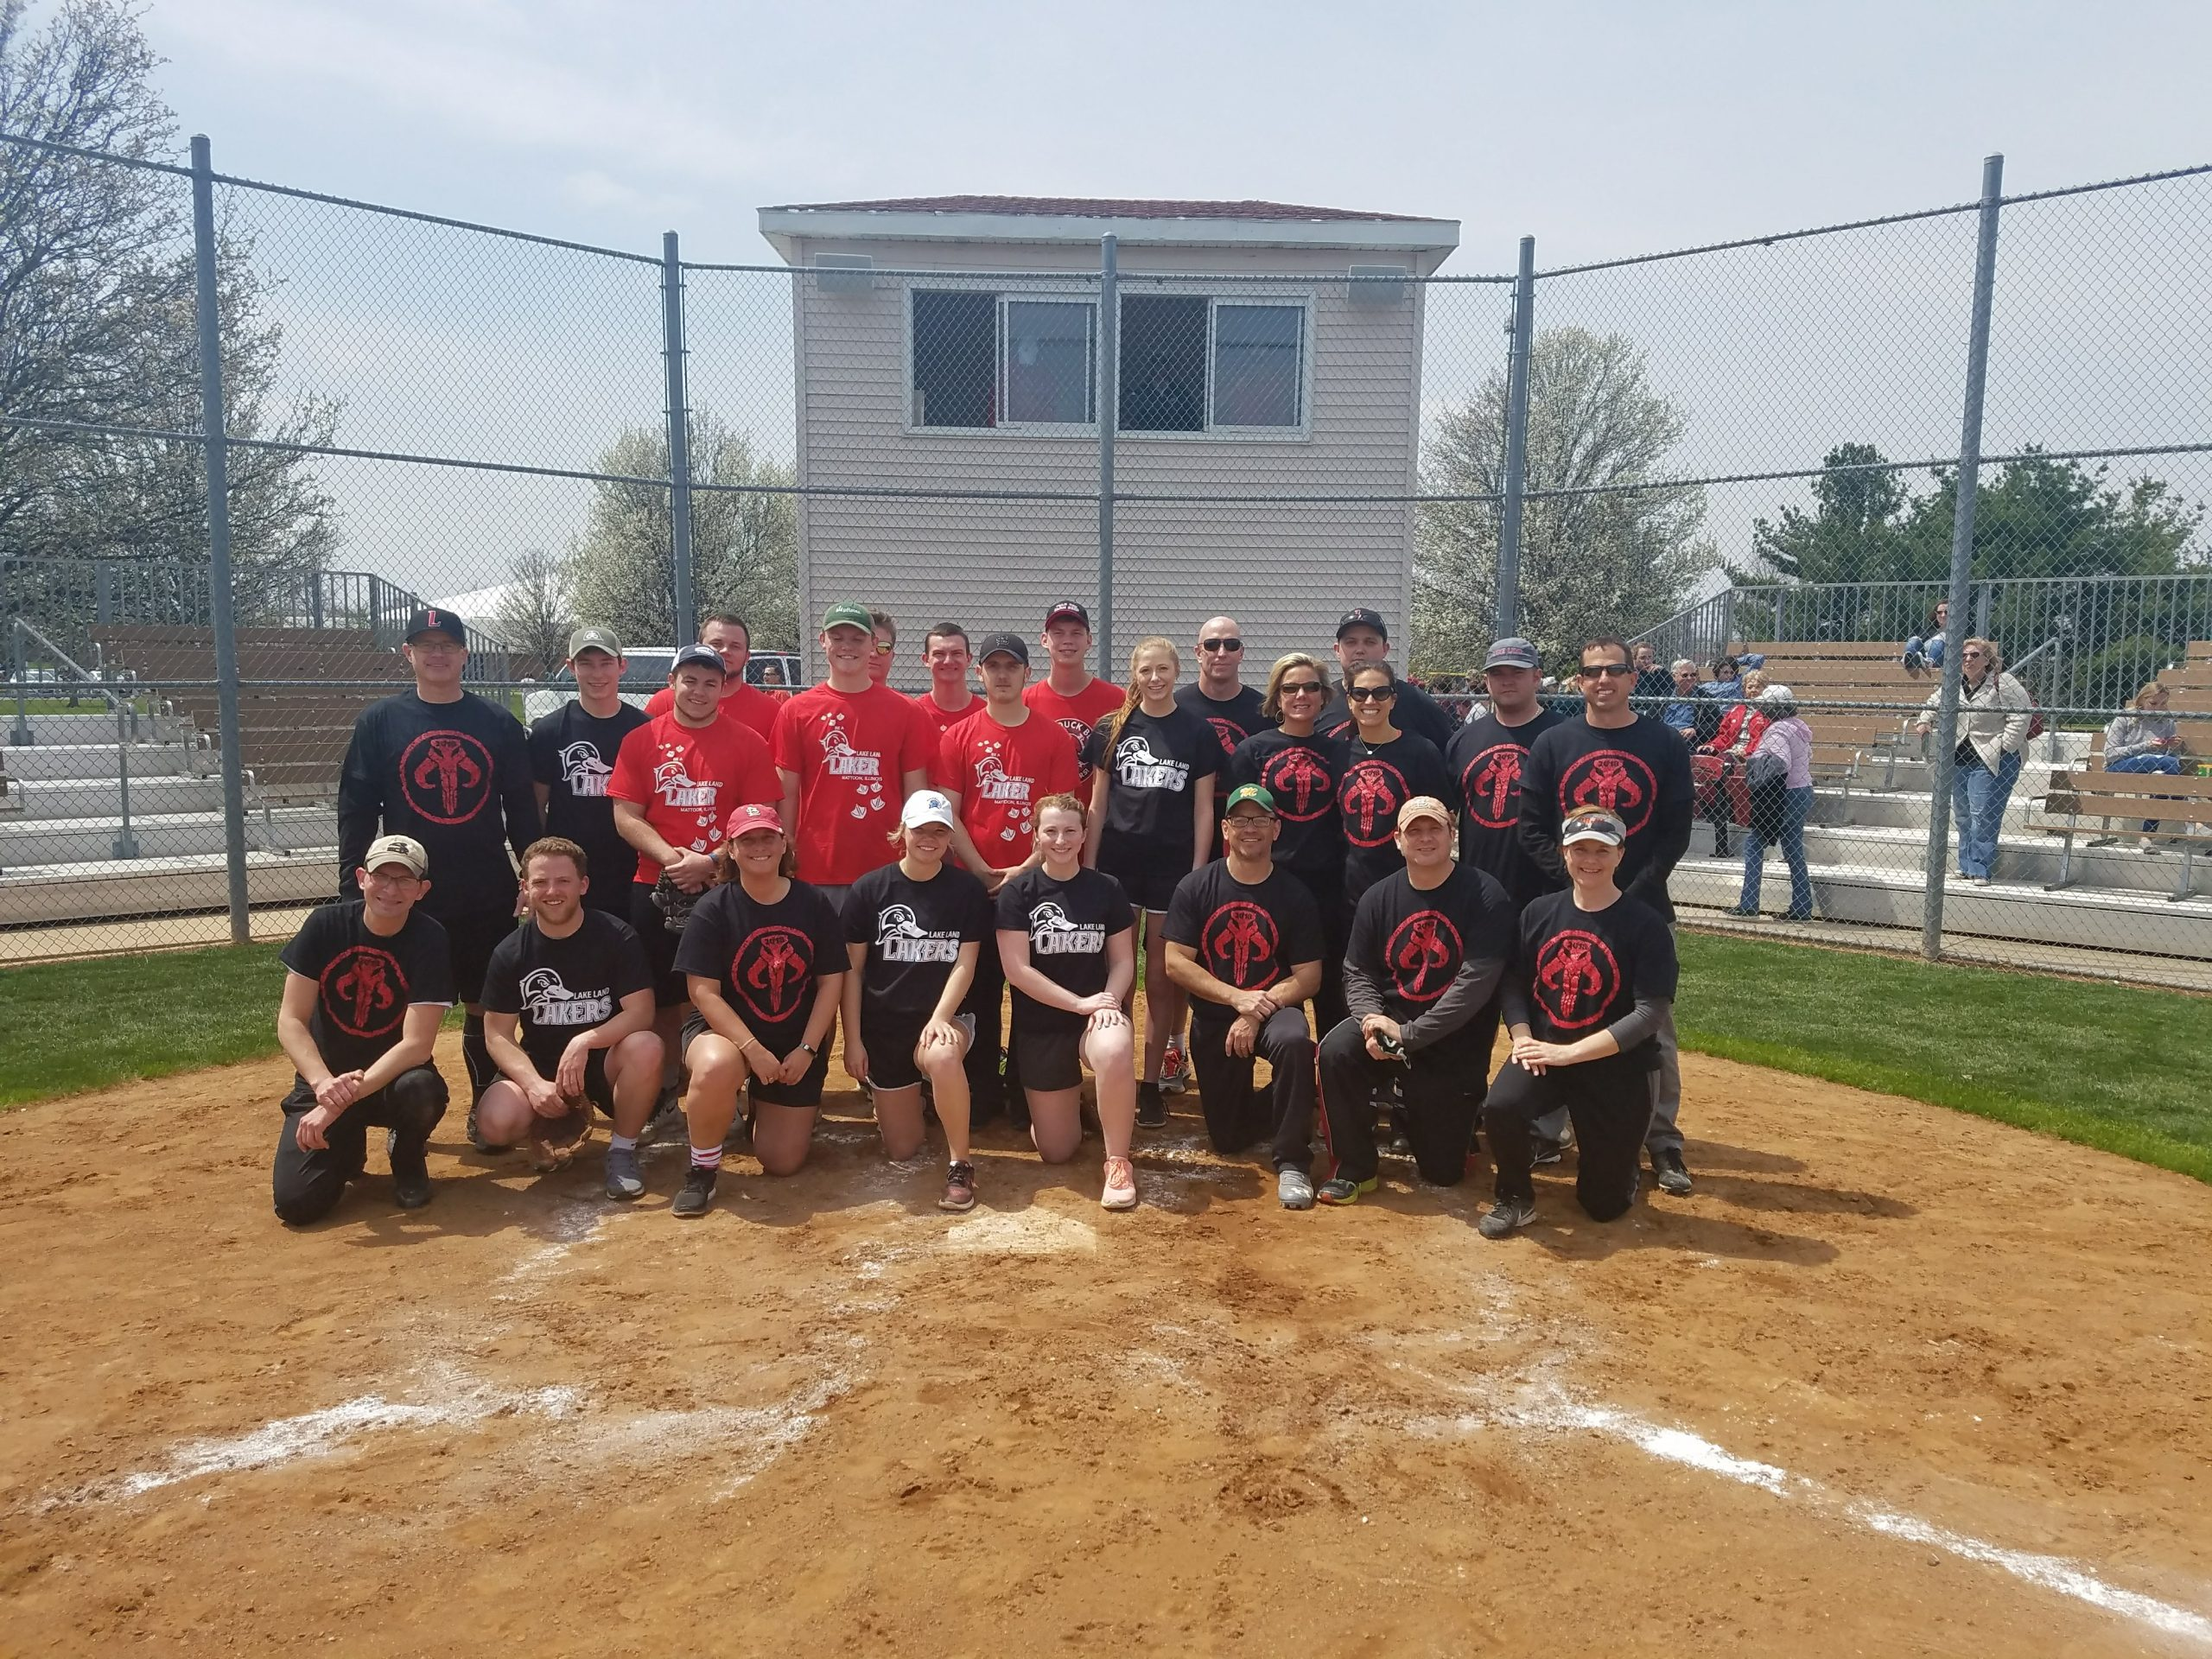 Lake Land College Faculty raises money for scholarship at annual softball game